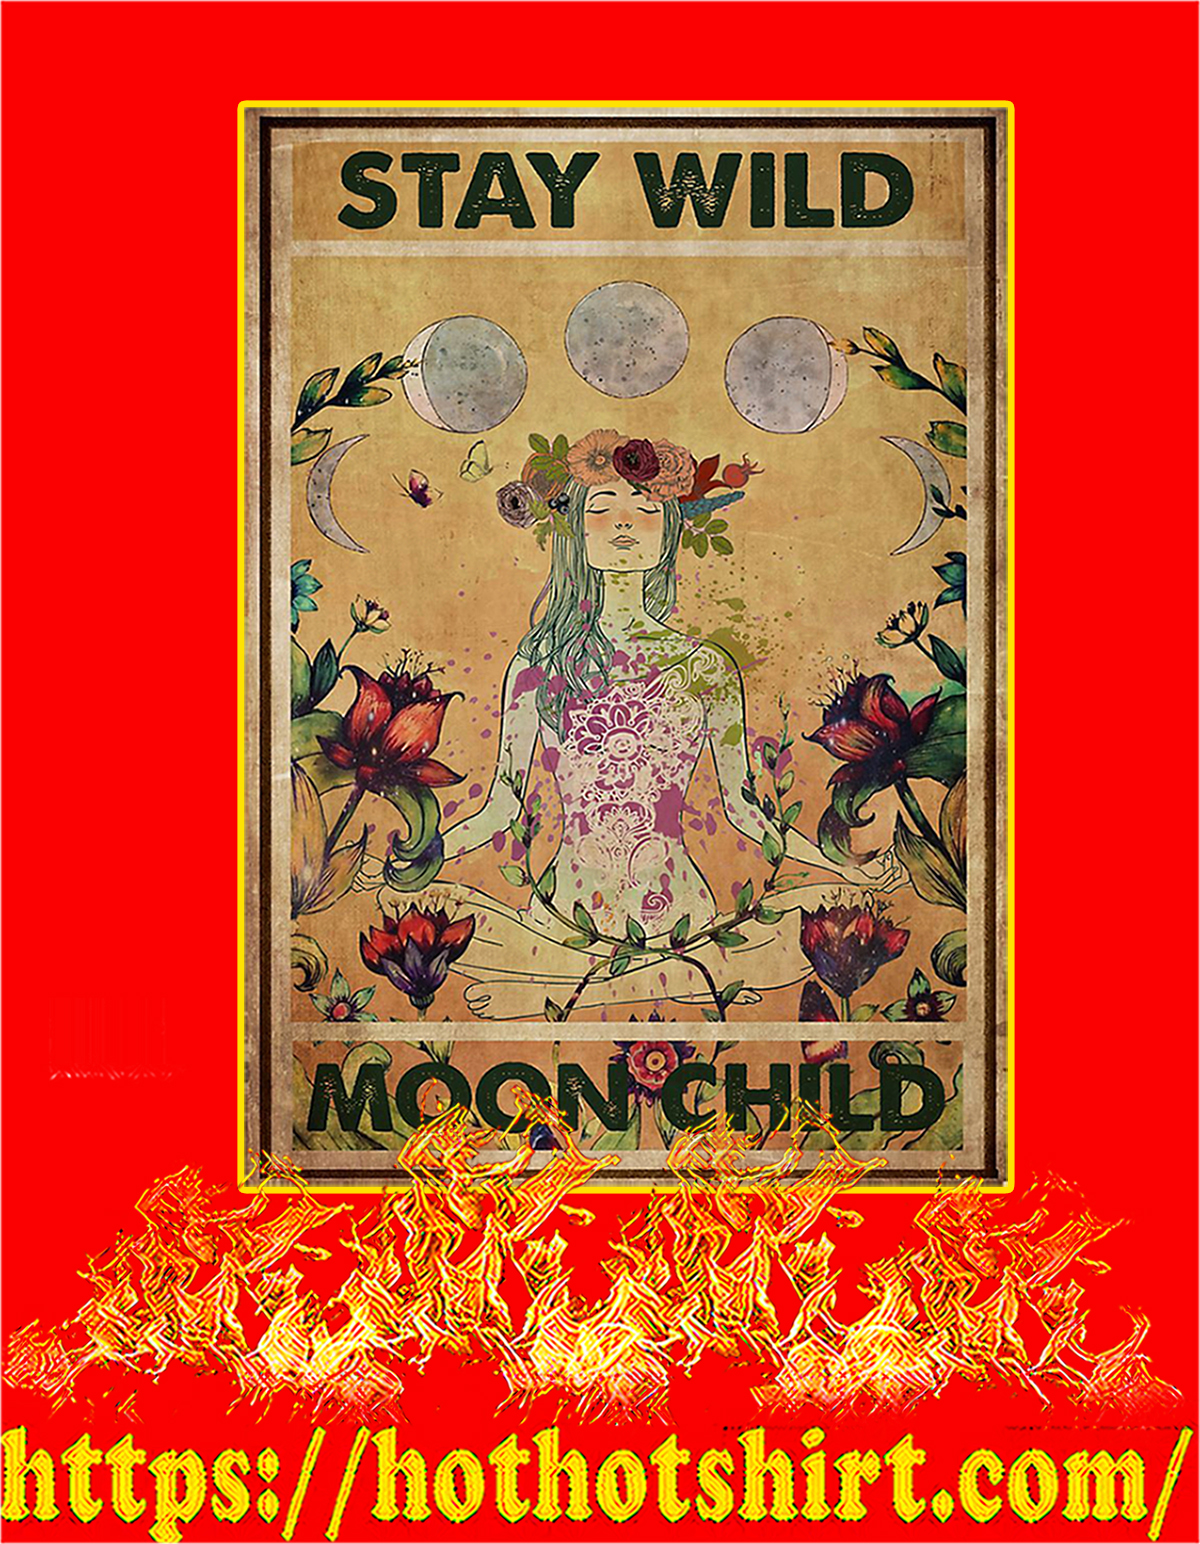 Hippie yoga stay wild moon child poster - A4